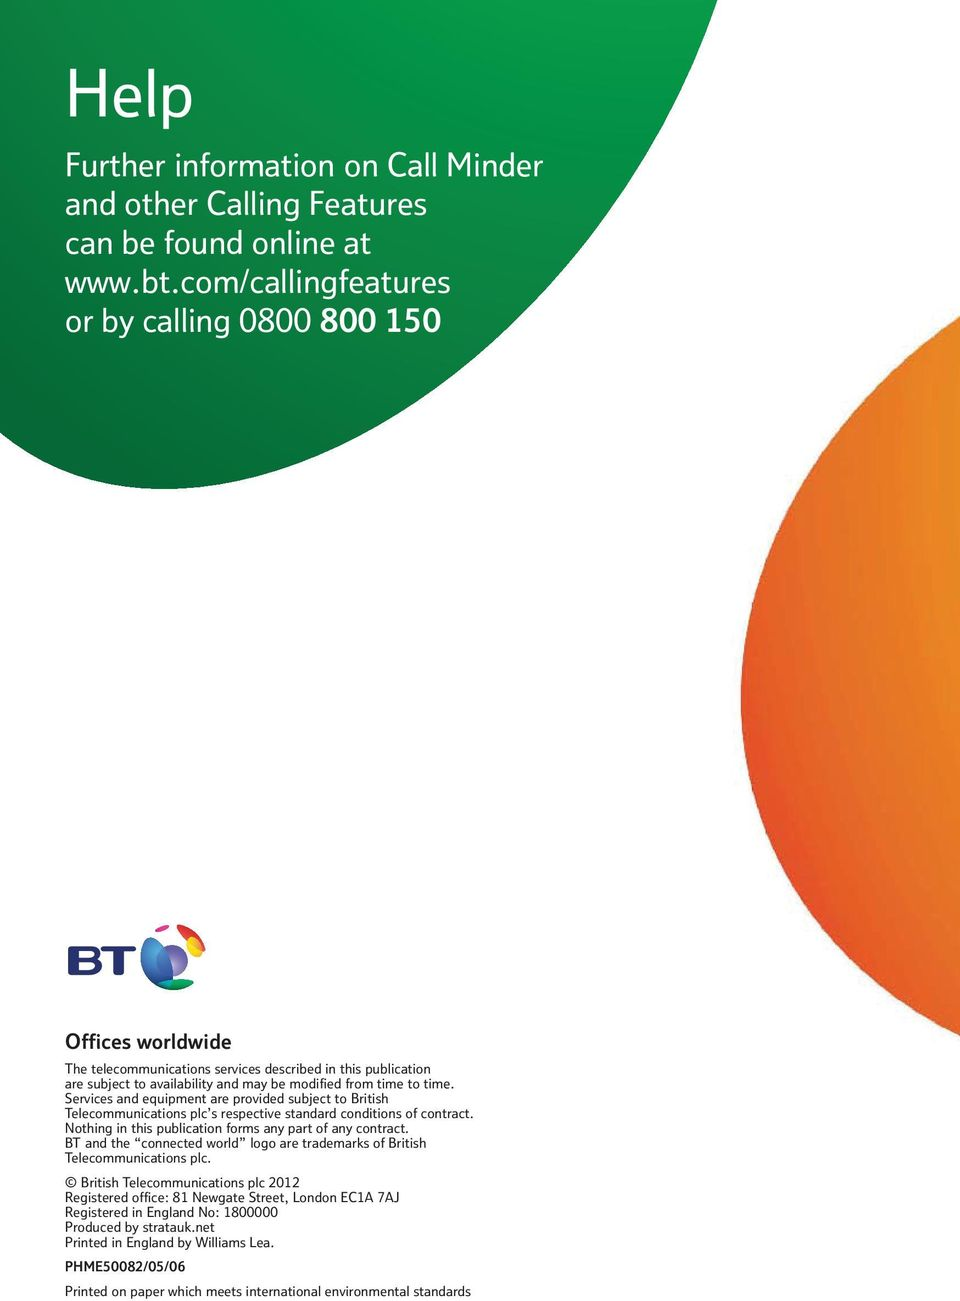 Services and equipment are provided subject to British Telecommunications plc s respective standard conditions of contract. Nothing in this publication forms any part of any contract.